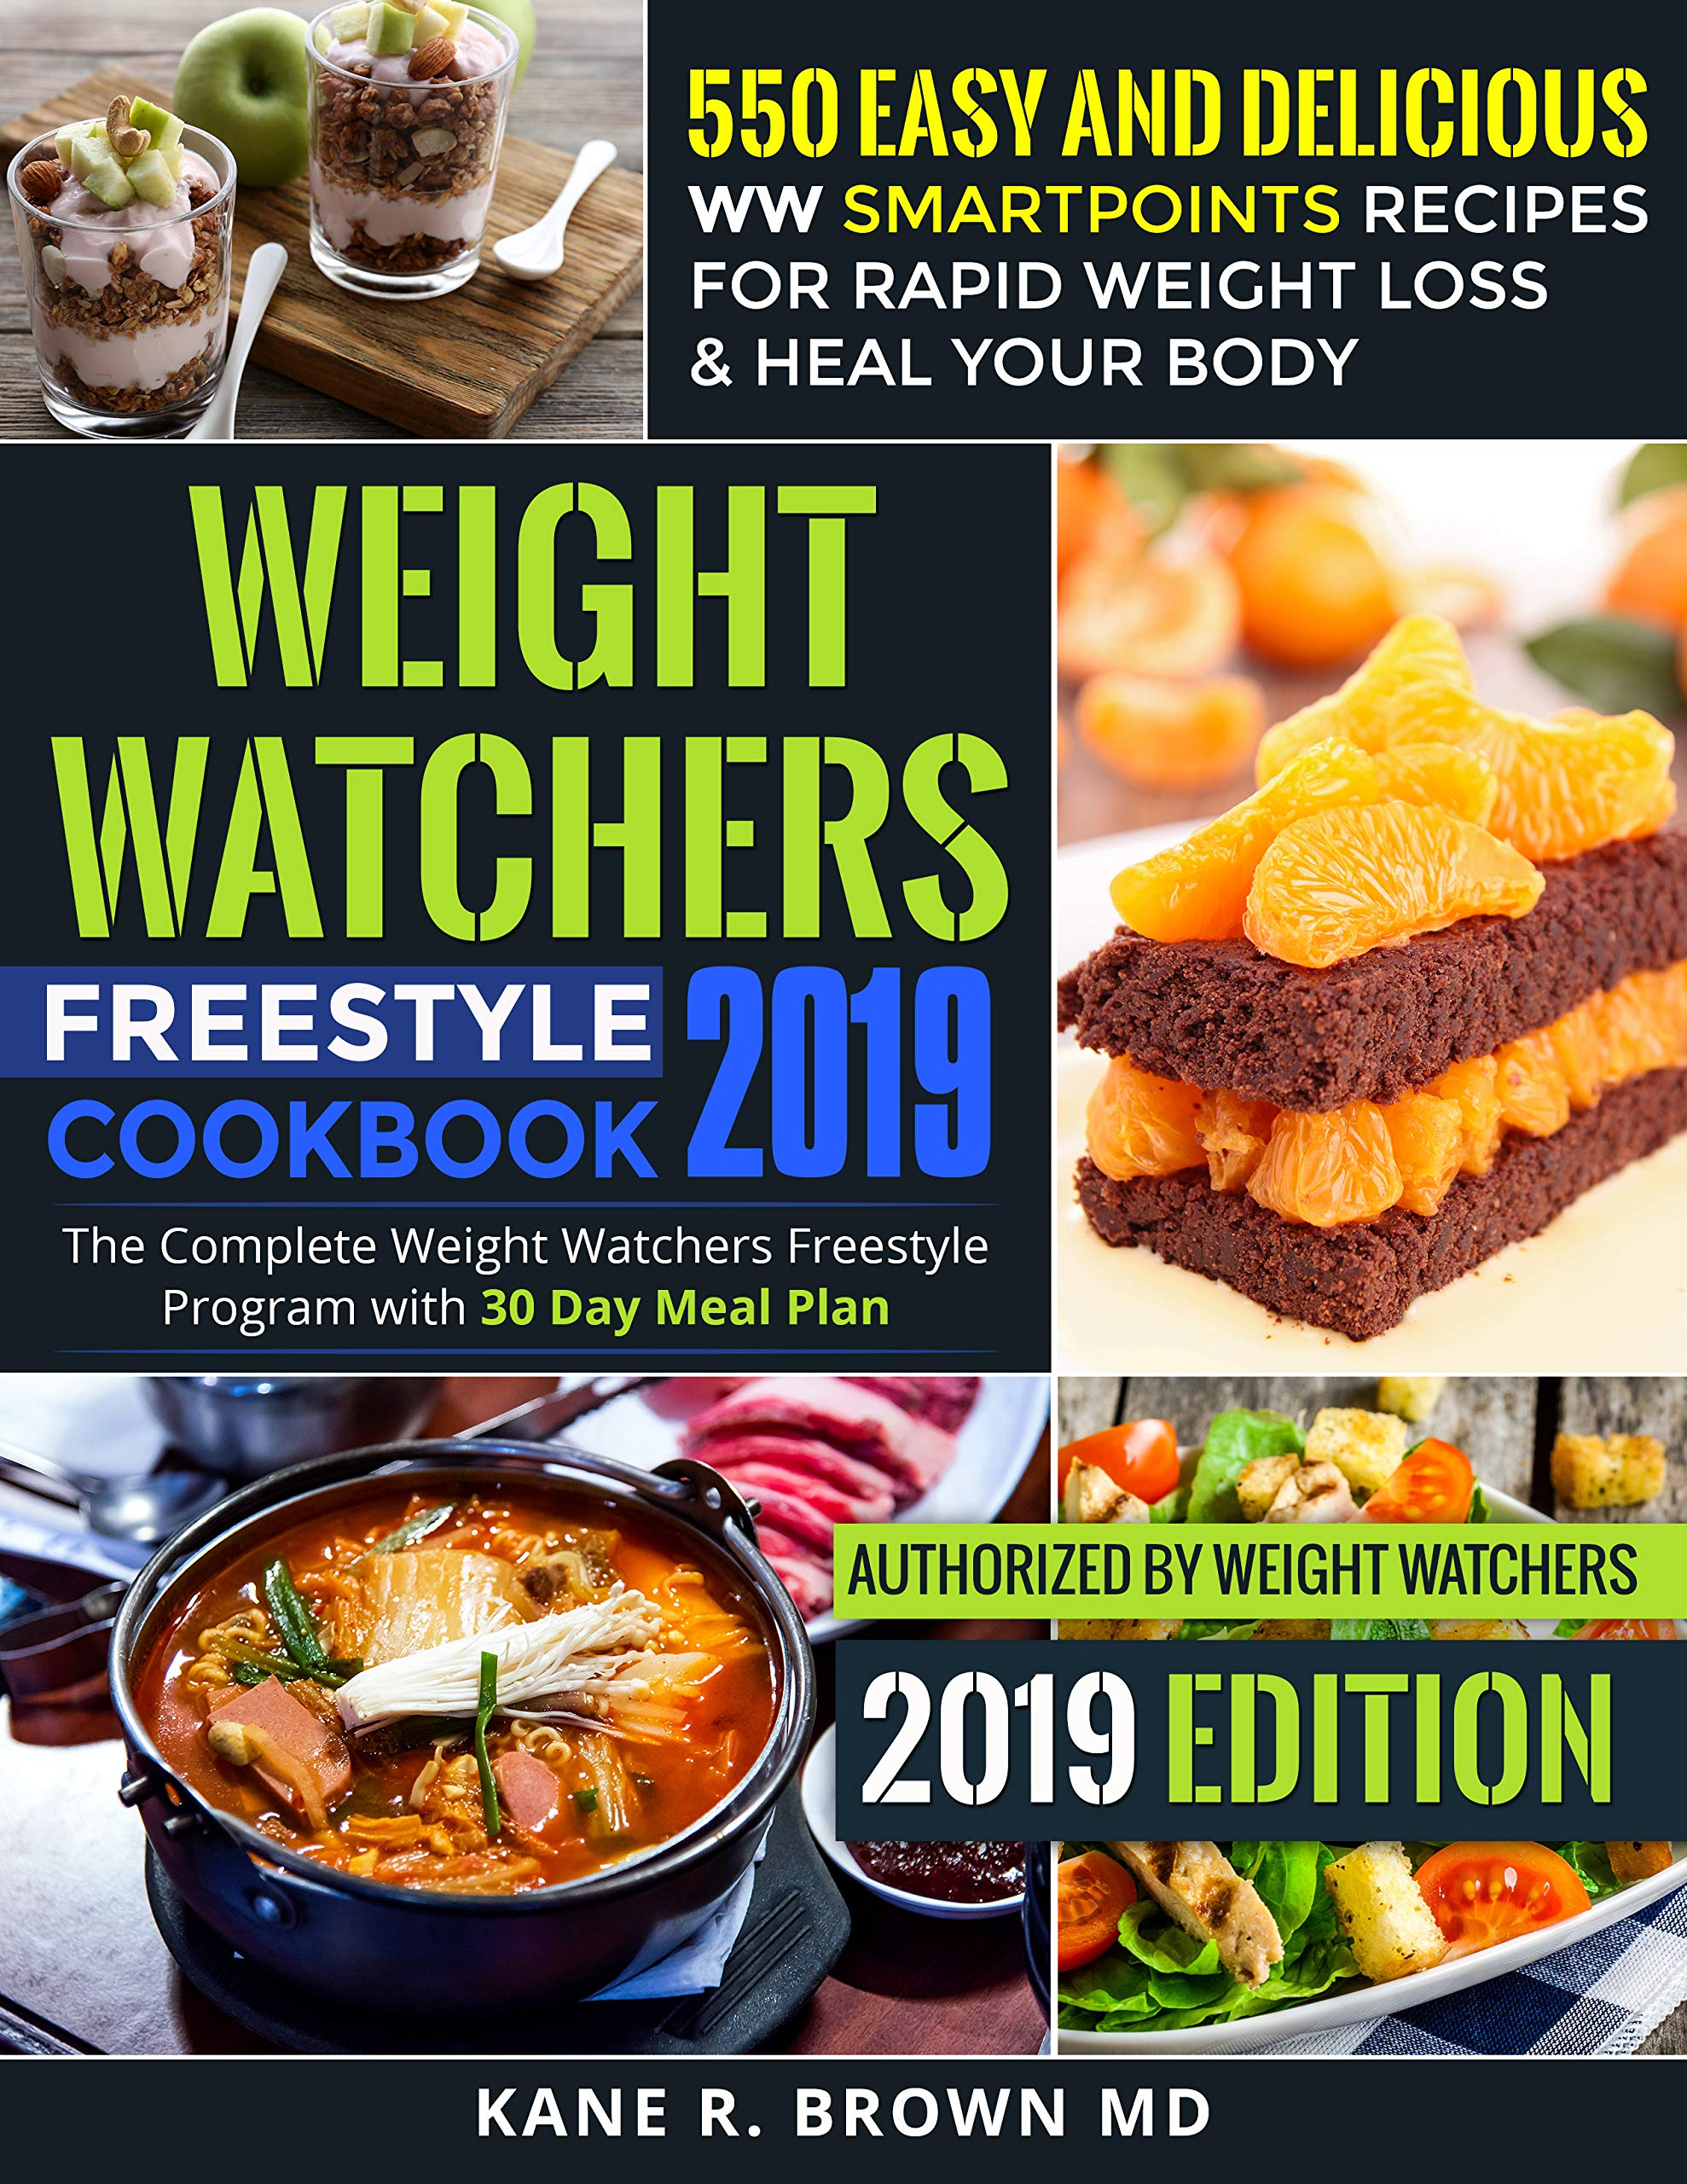 Weight Watchers Freestyle Cookbook #2019: 550 Easy and Delicious WW SmartPoints Recipes for Rapid Weight Loss & Heal Your Body: The Complete Weight Watchers ... with 30 Day Meal Plan